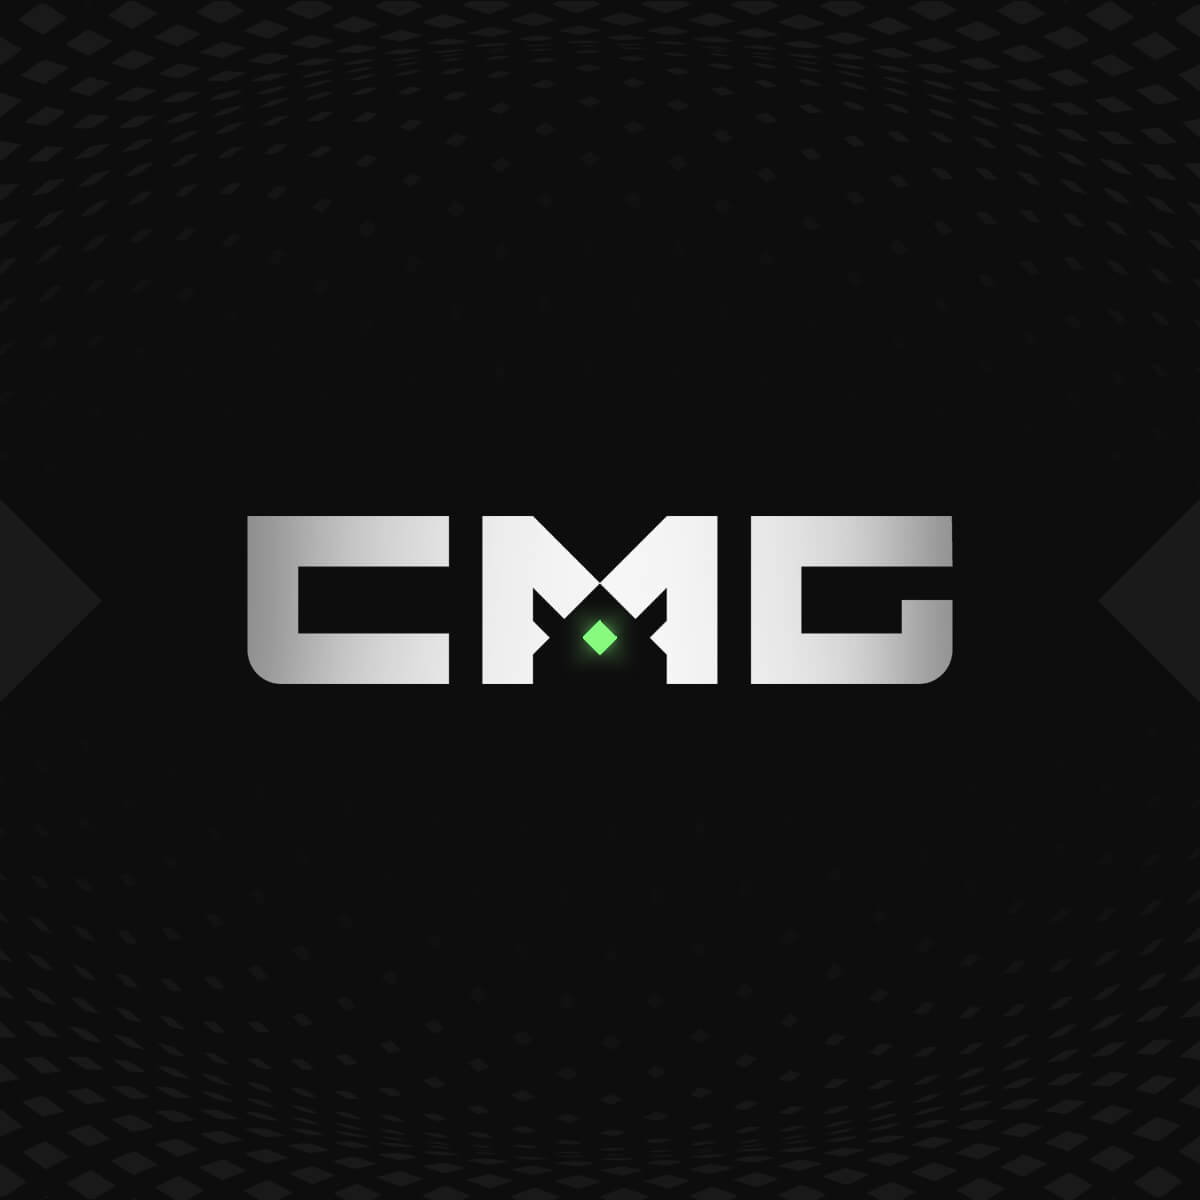 Competitive Video Gaming and eSports Tournaments by CMG